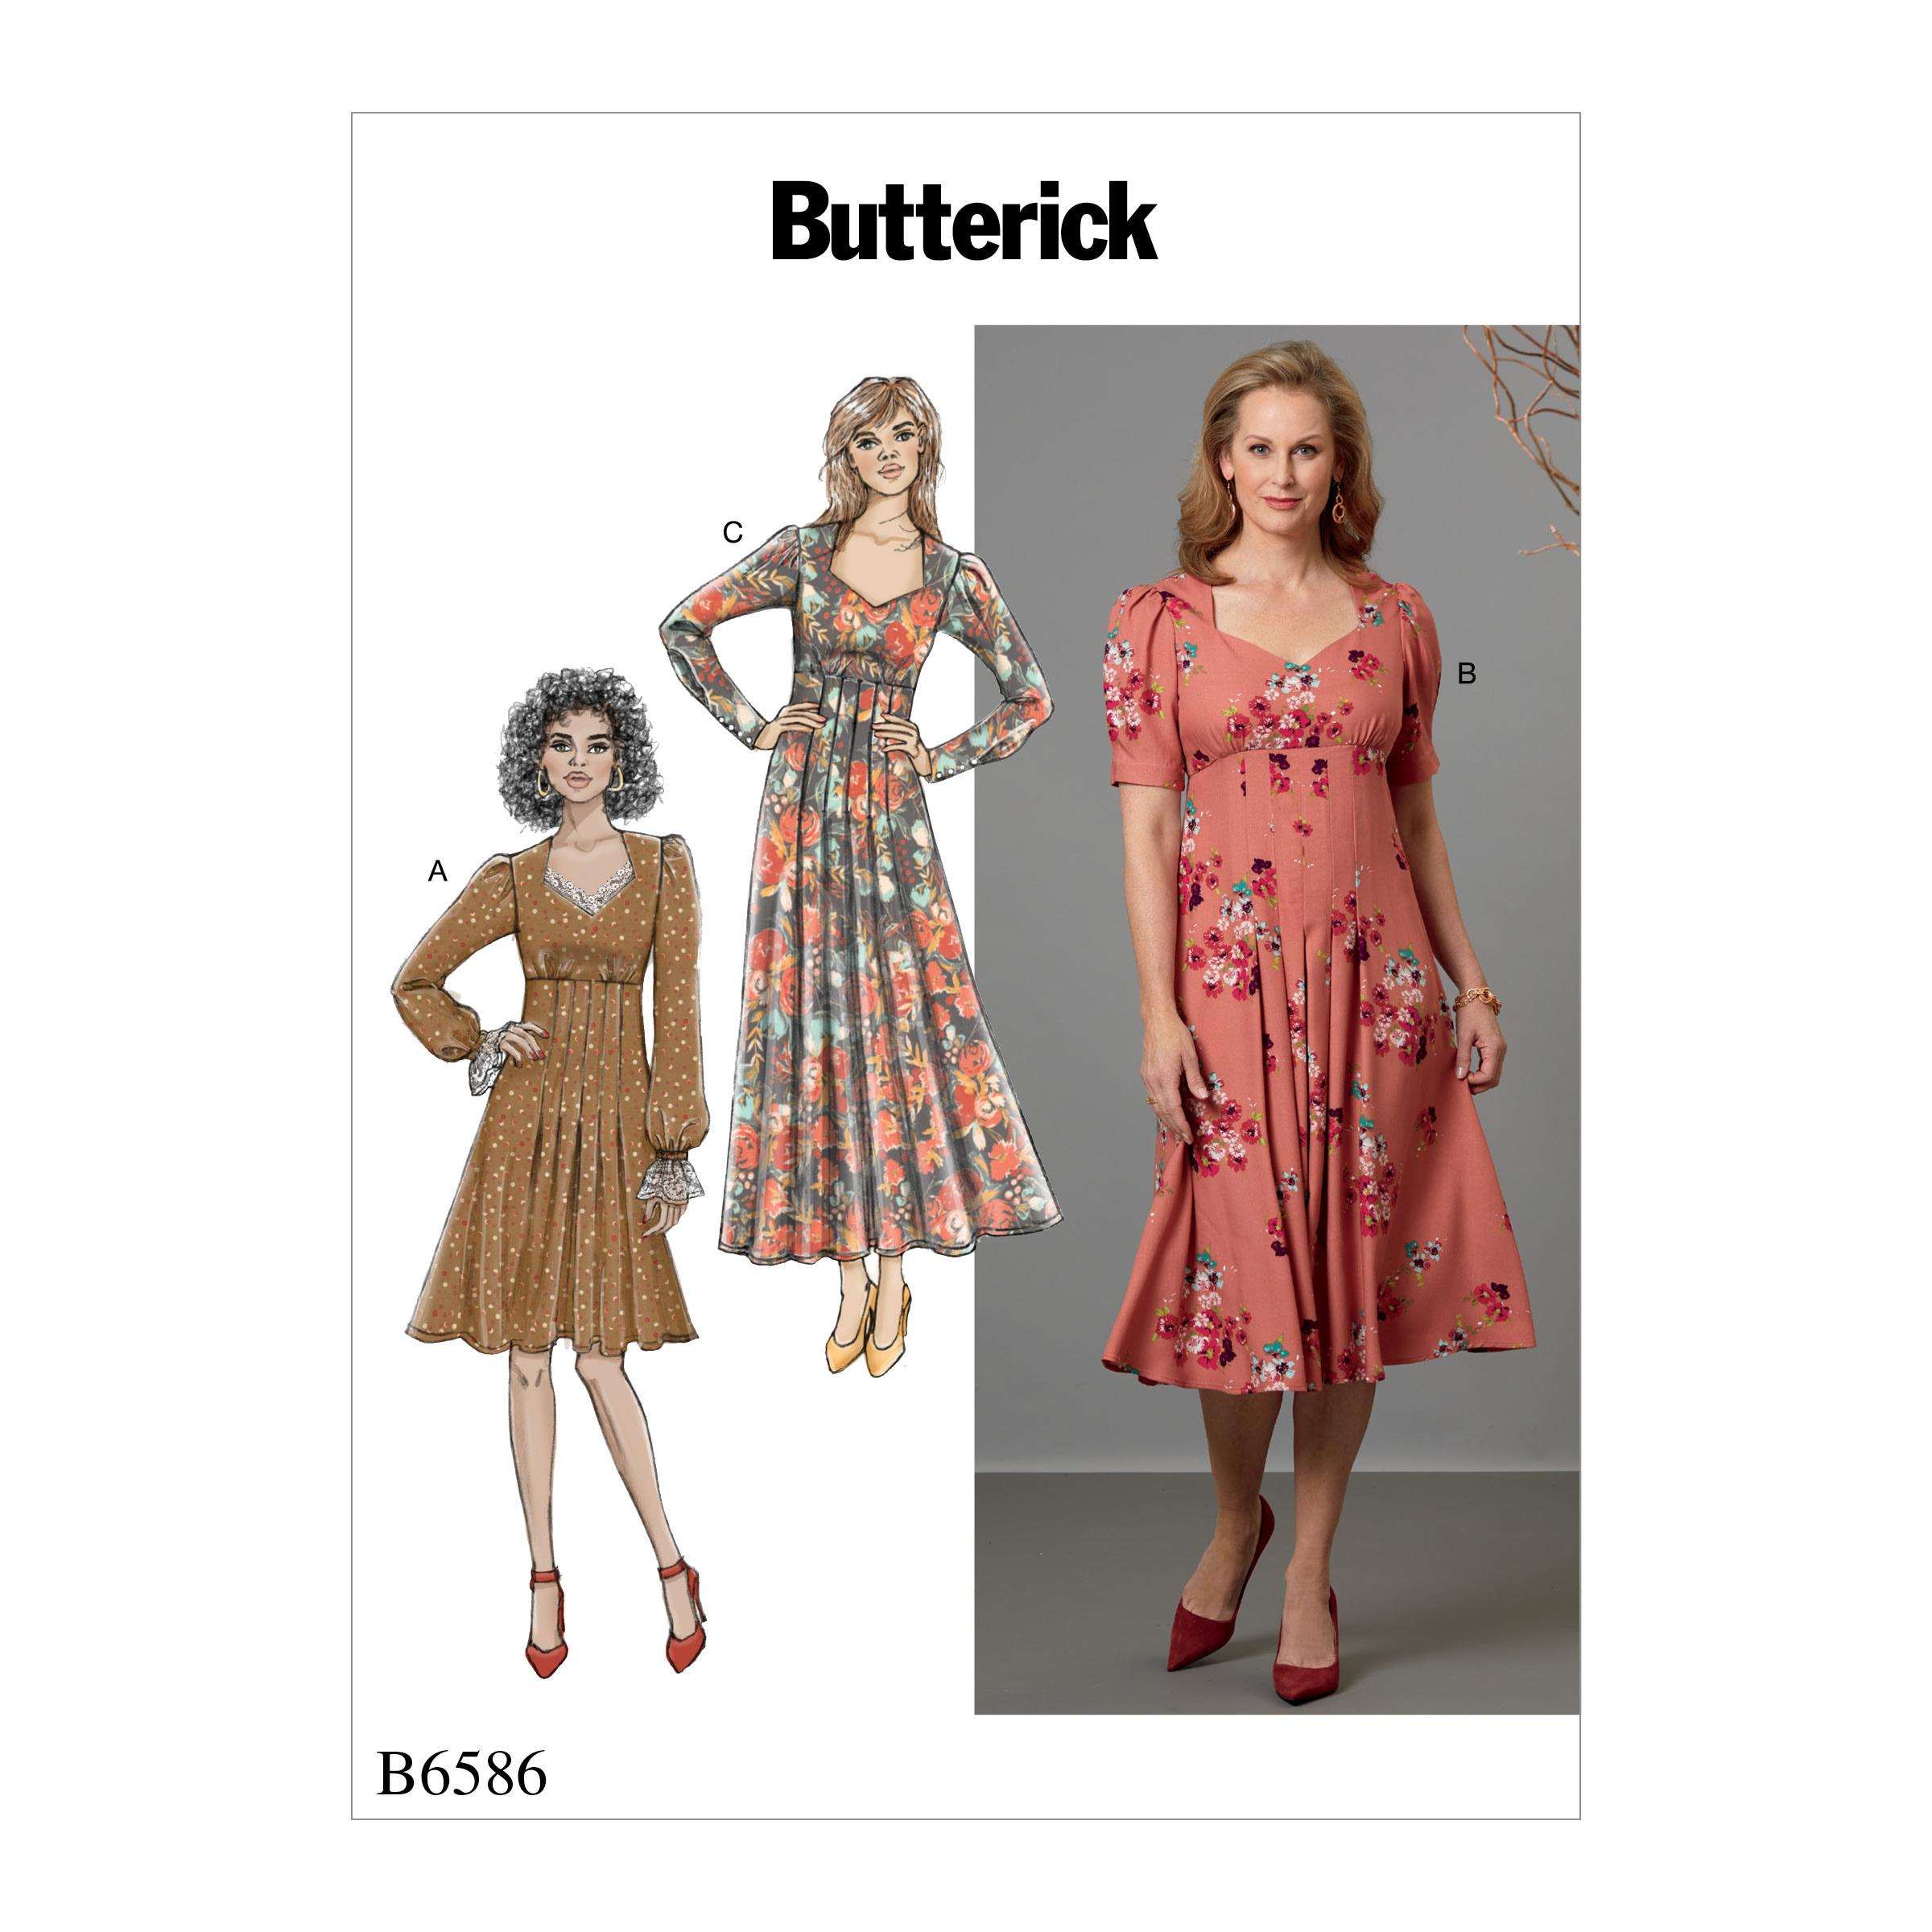 Butterick B6586 Misses' Dress